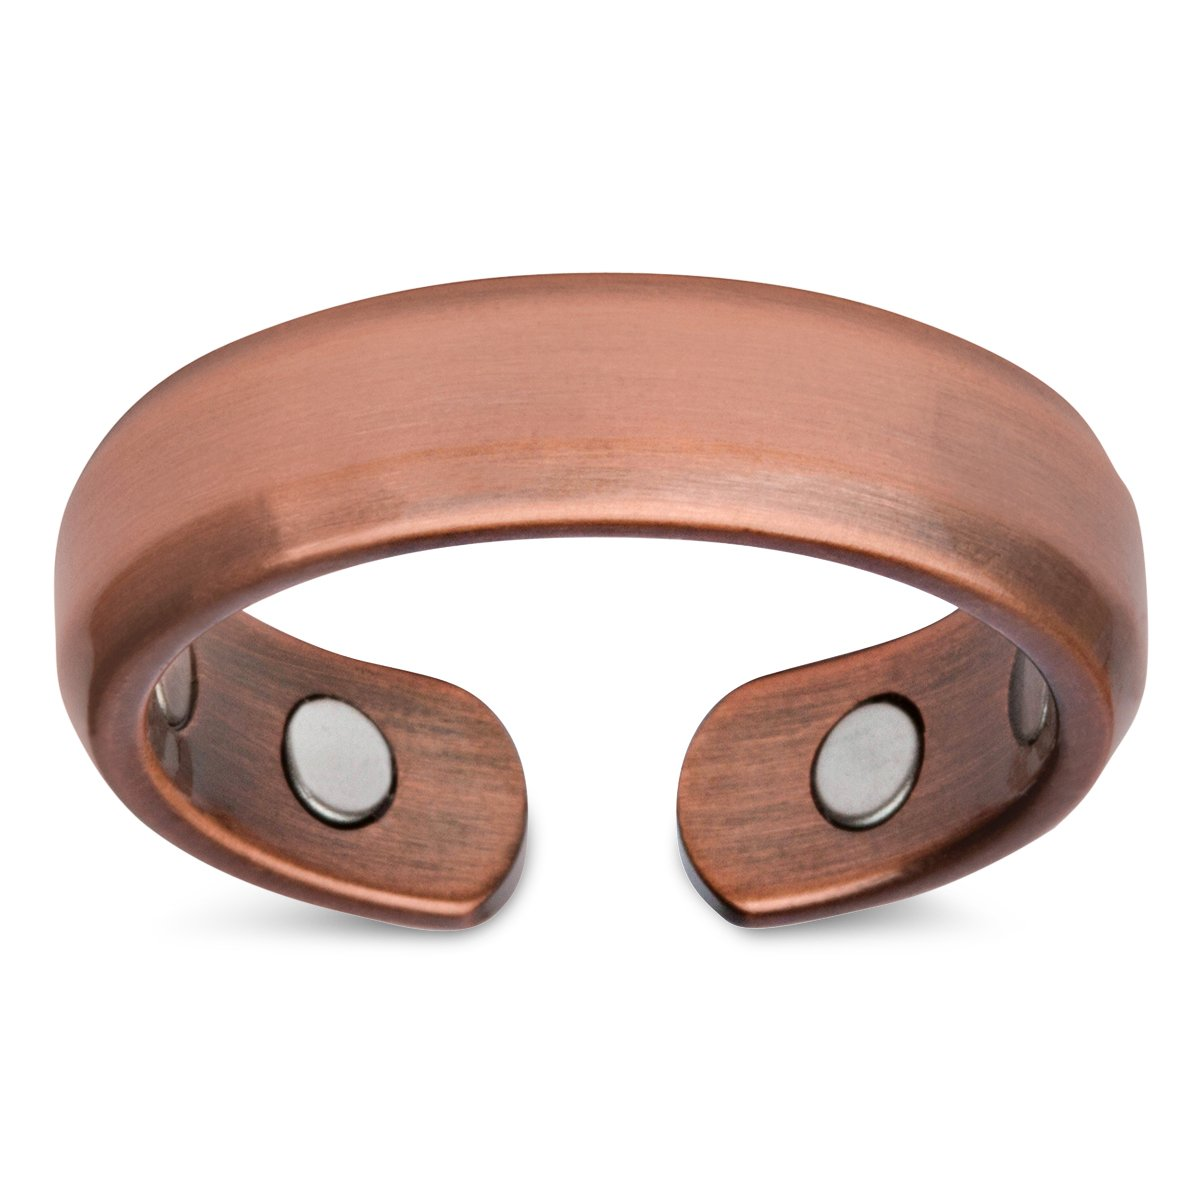 Elegant Pure Copper Magnetic Therapy Ring Pain Relief for Arthritis and Carpal Tunnel